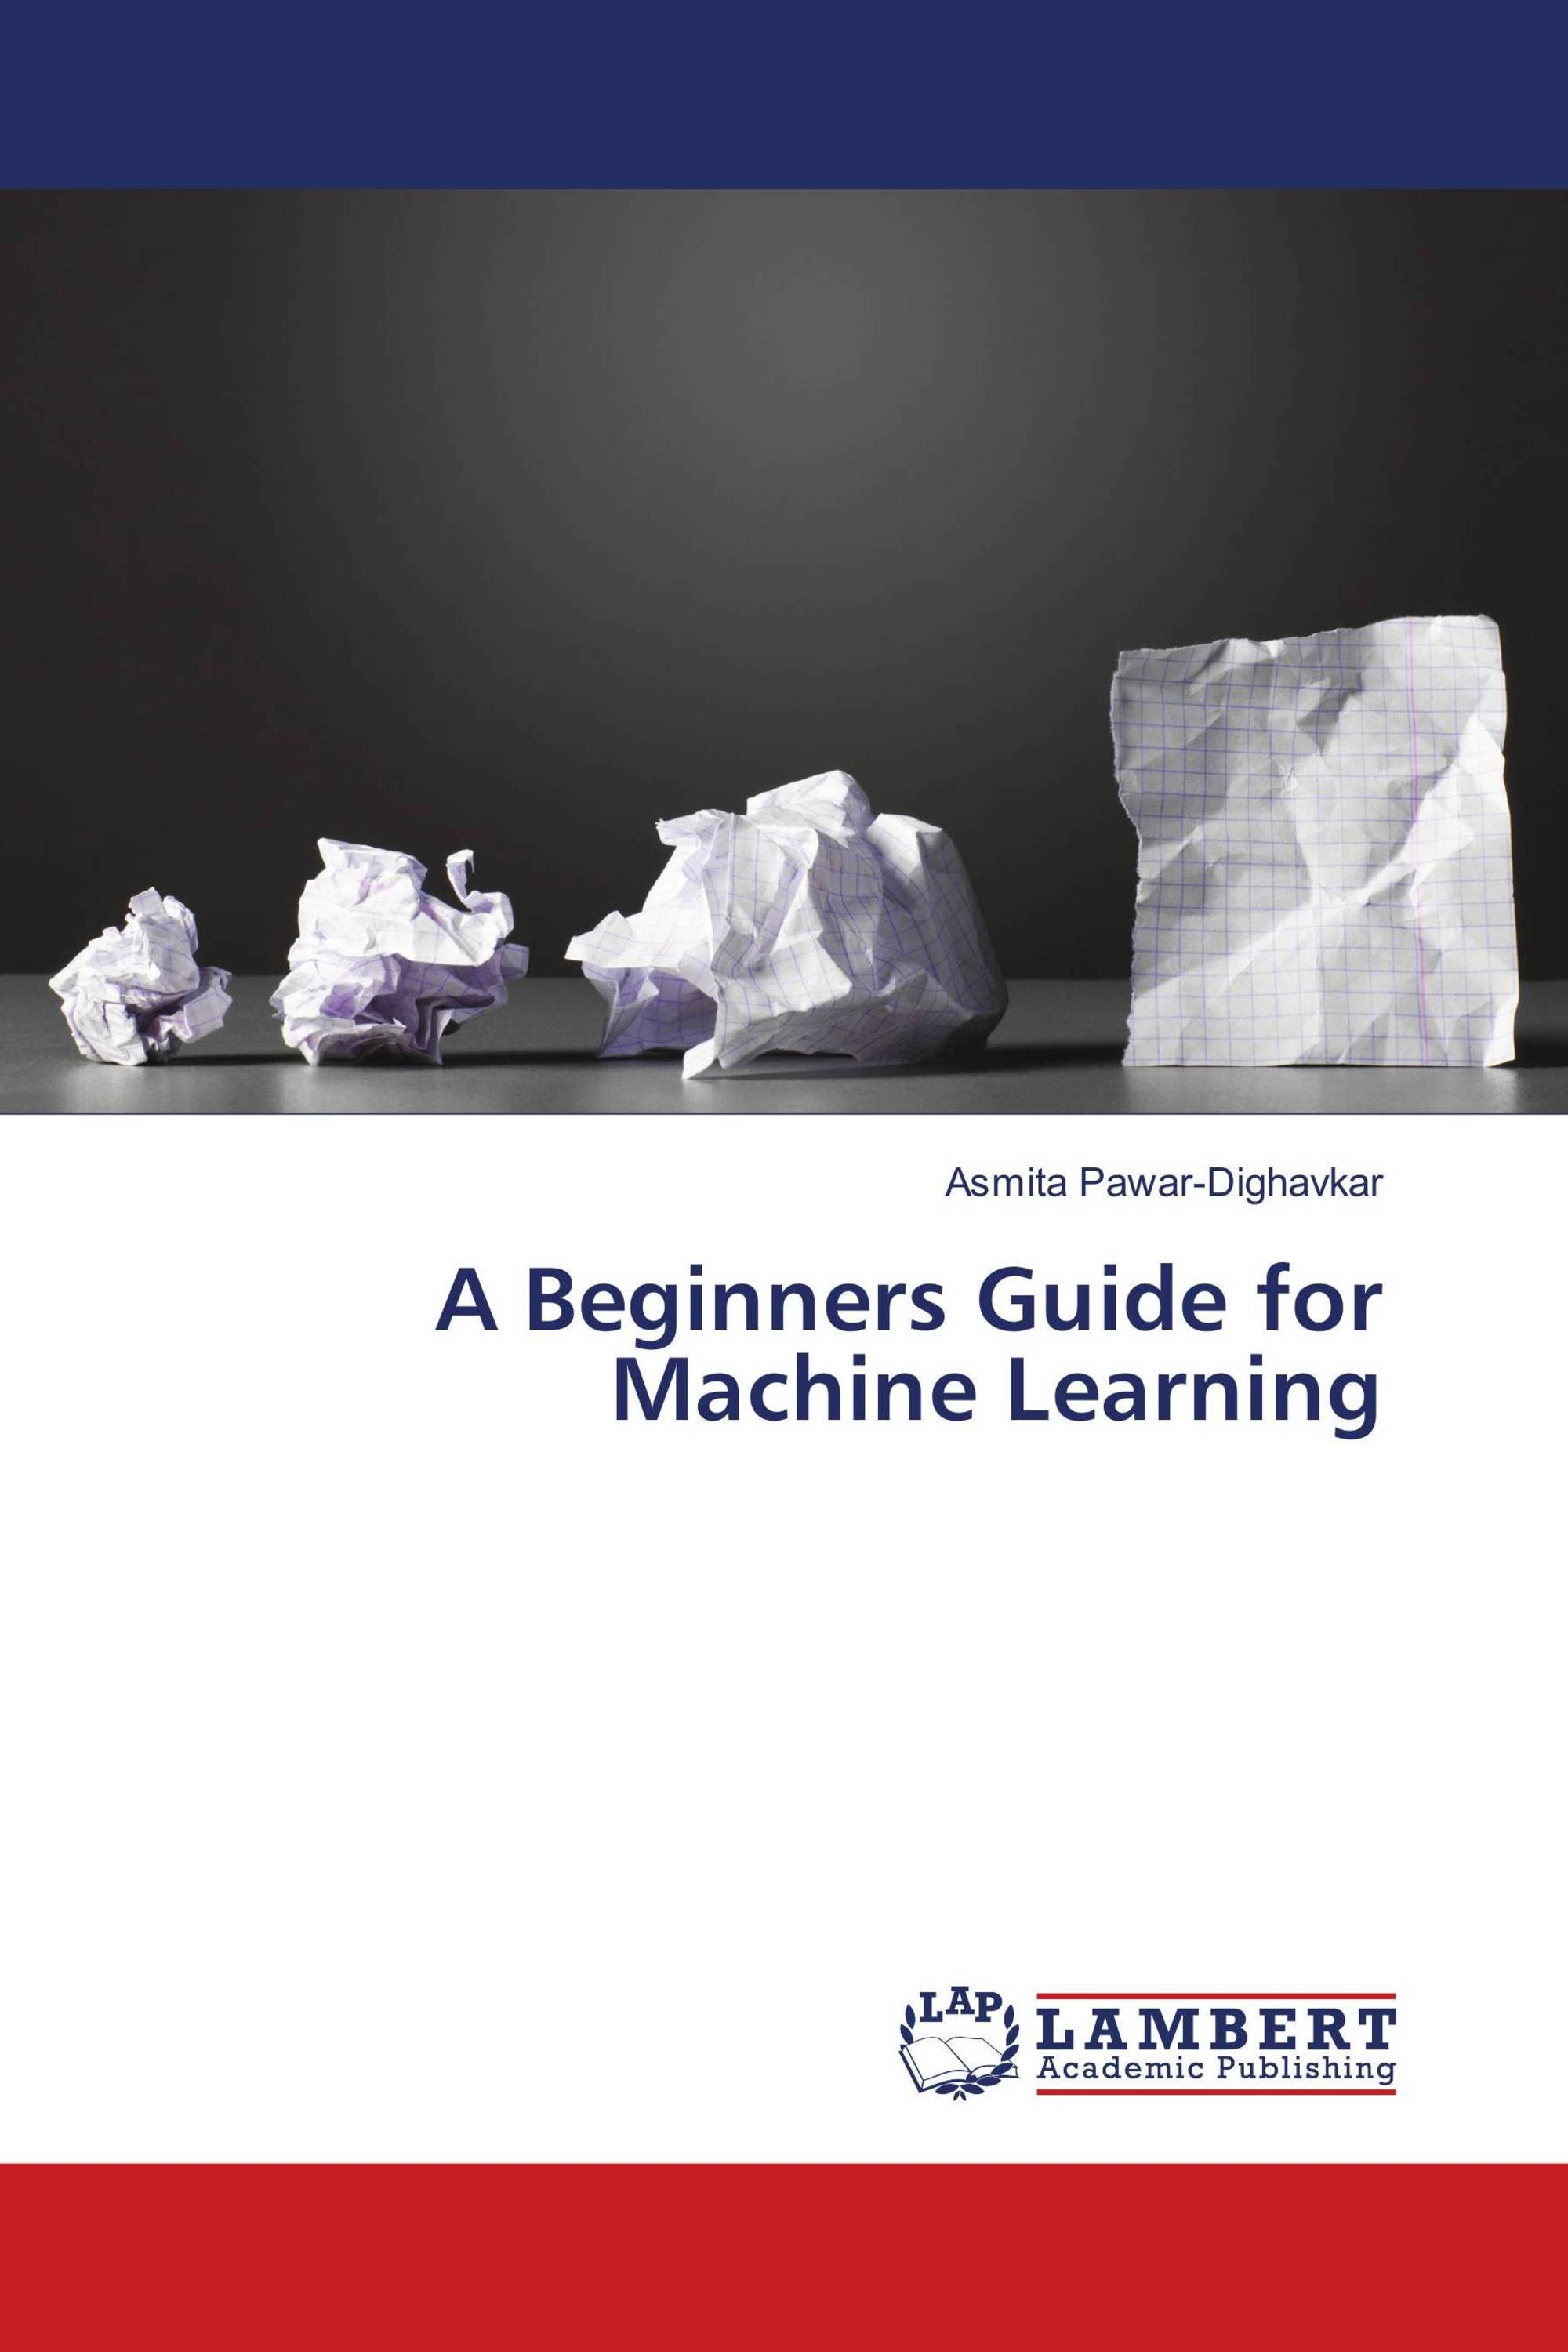 A Beginners Guide for Machine Learning